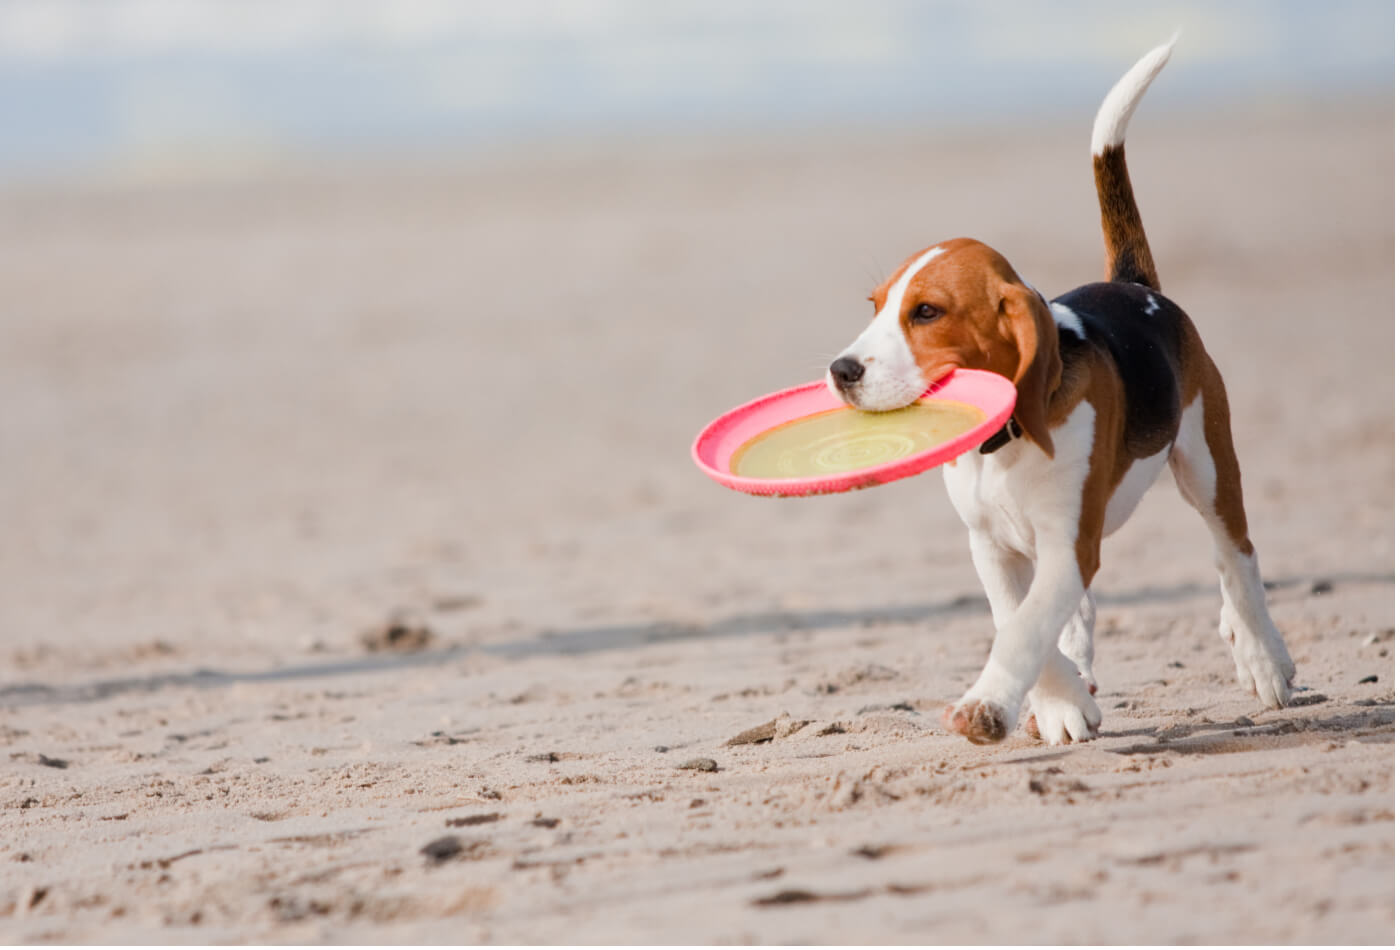 Beagle puppy playing with a Frisbee on the beach